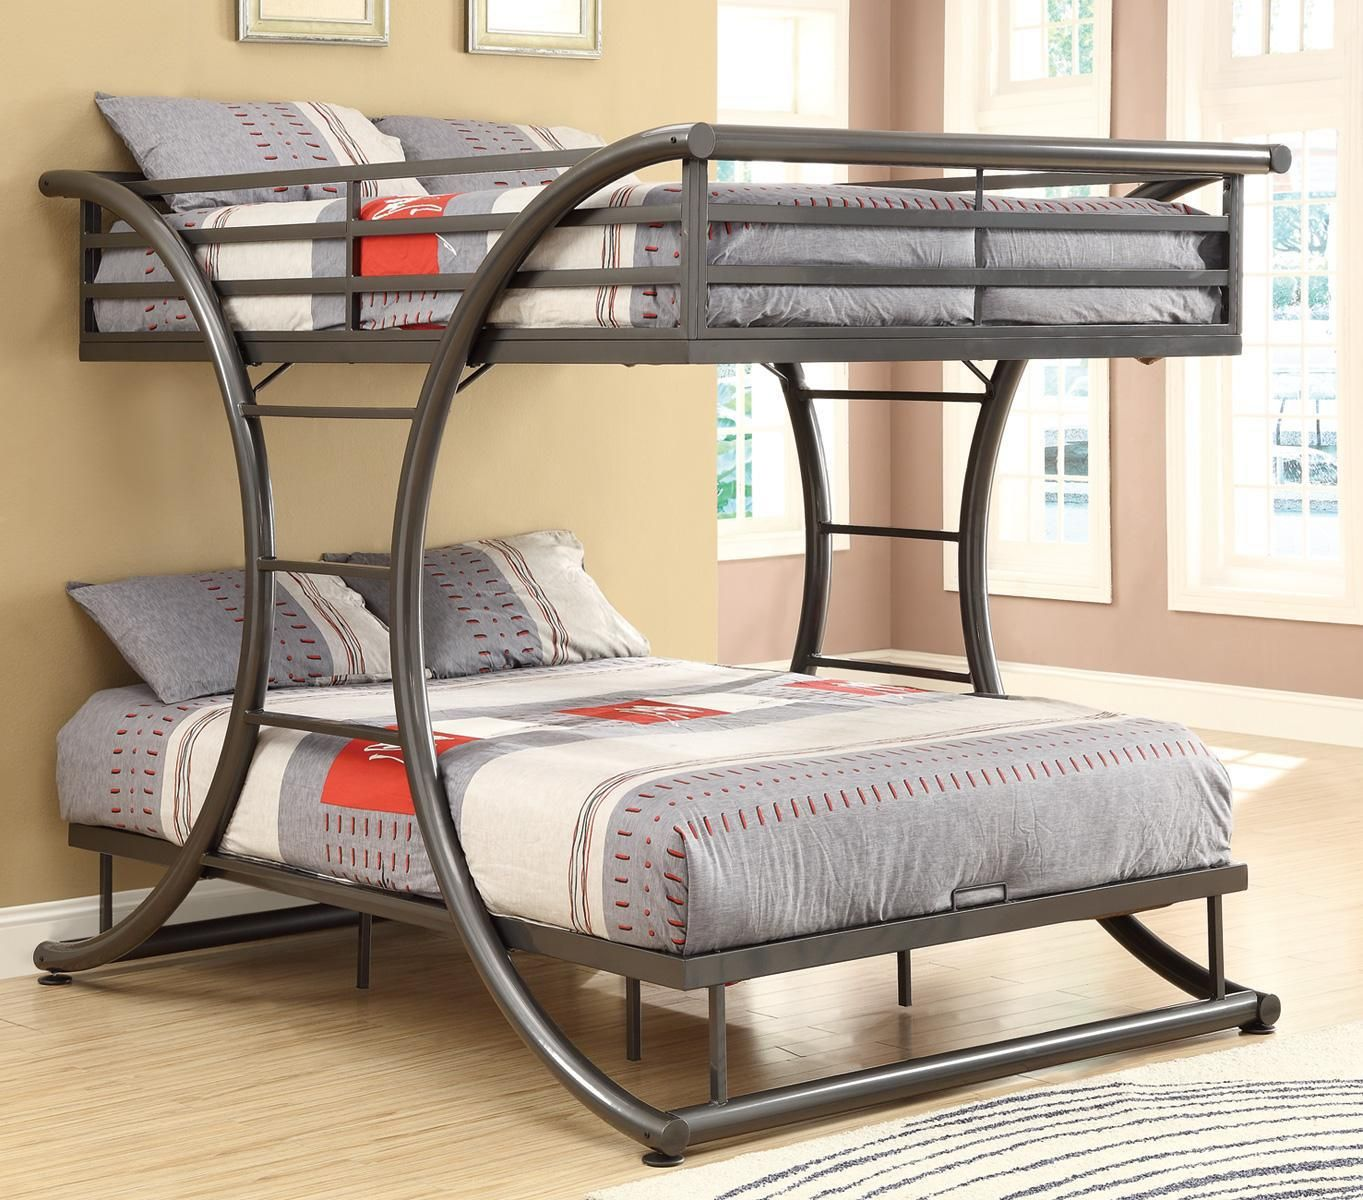 Stephan Ii Full Size Bed In 2020 Bunk Beds Bunk Beds With Stairs Kids Bunk Beds